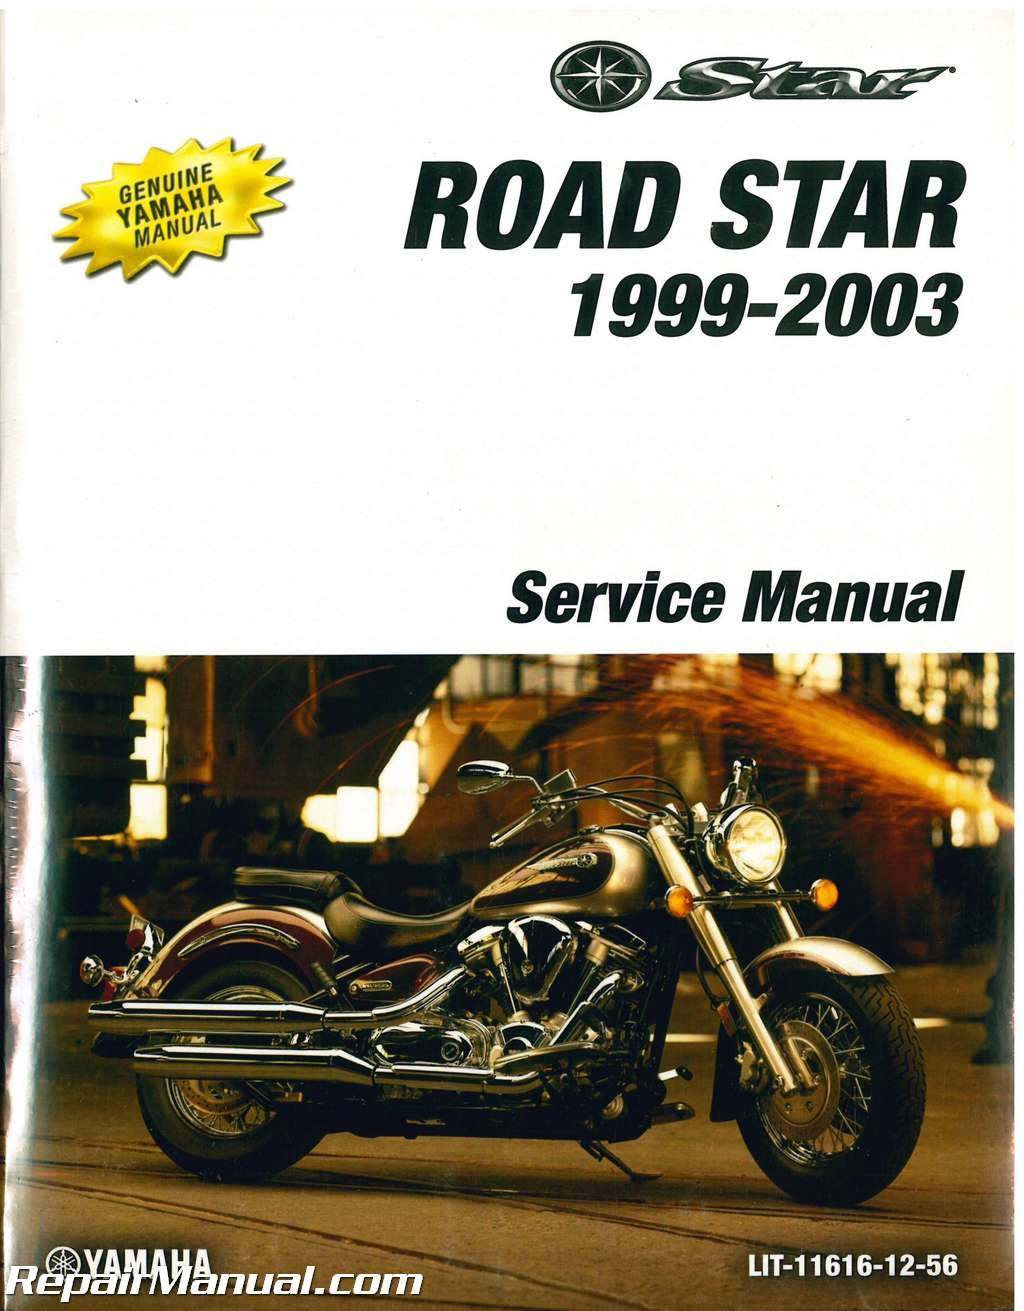 LIT-11616-12-56 1999-2003 Yamaha Road Star XV1600 Motorcycle Service Manual:  Manufacturer: Amazon.com: Books